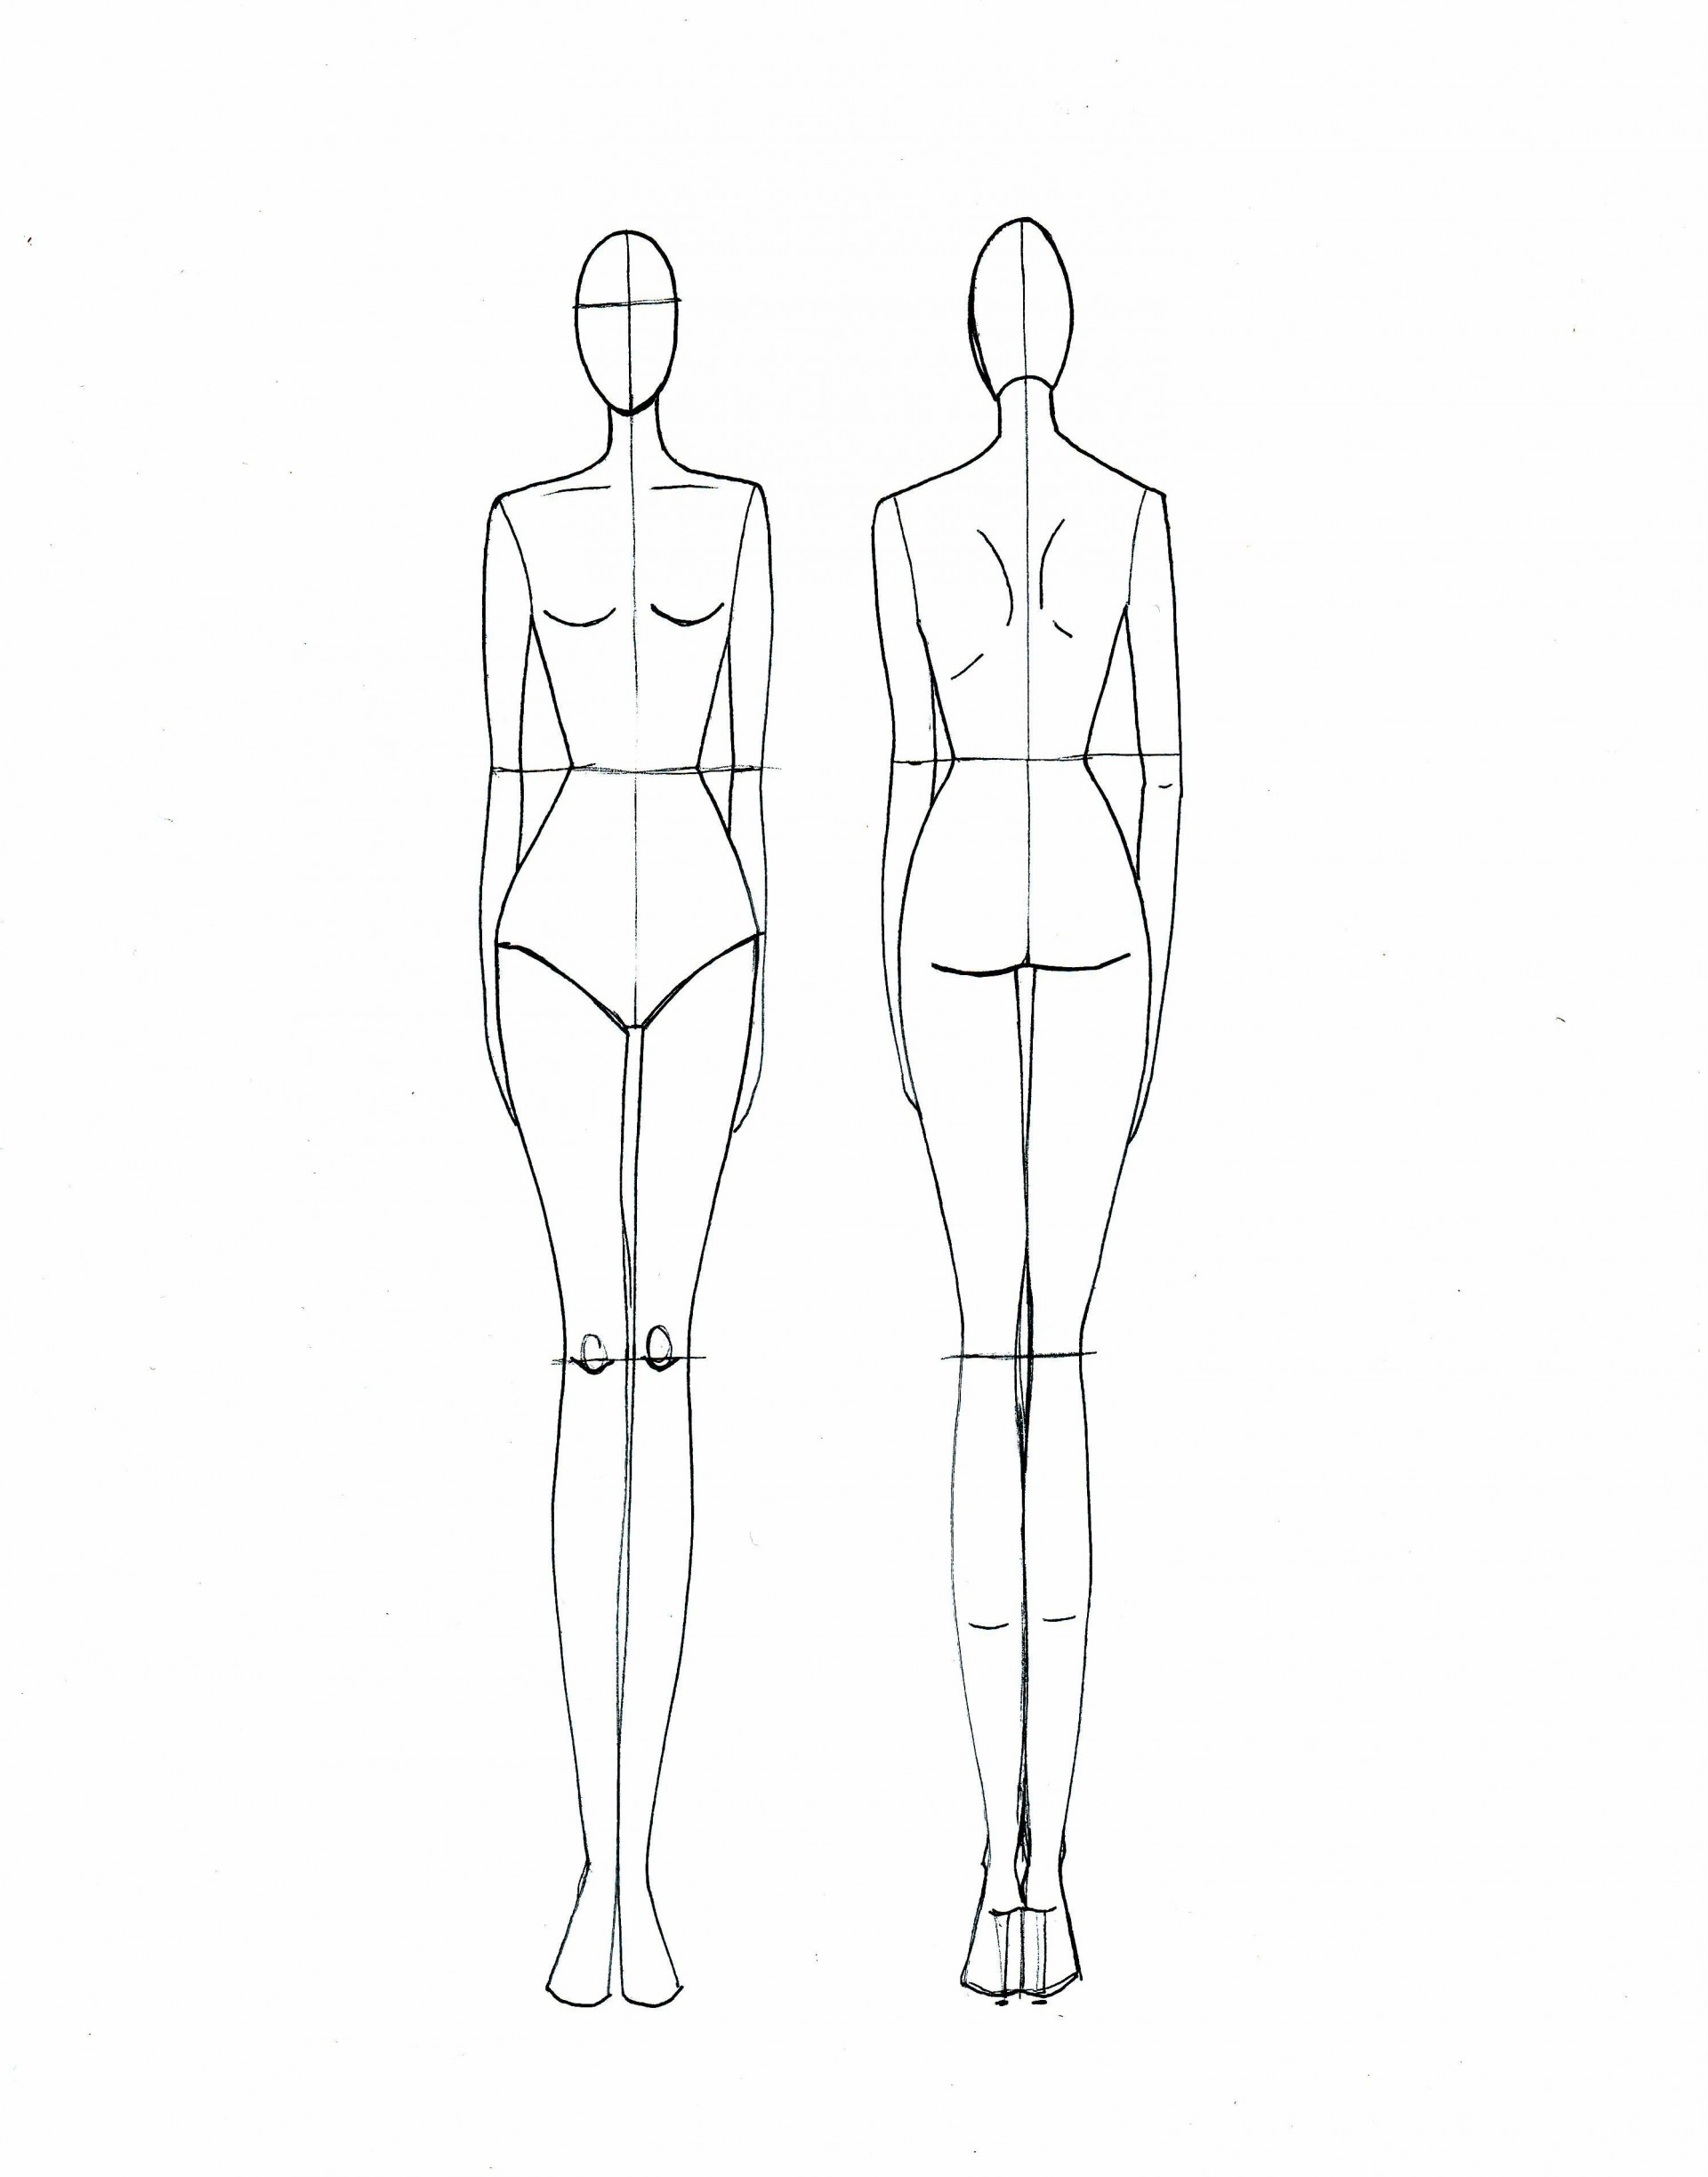 005 Frightening Body Template For Fashion Design Inspiration  Female Male Human1920